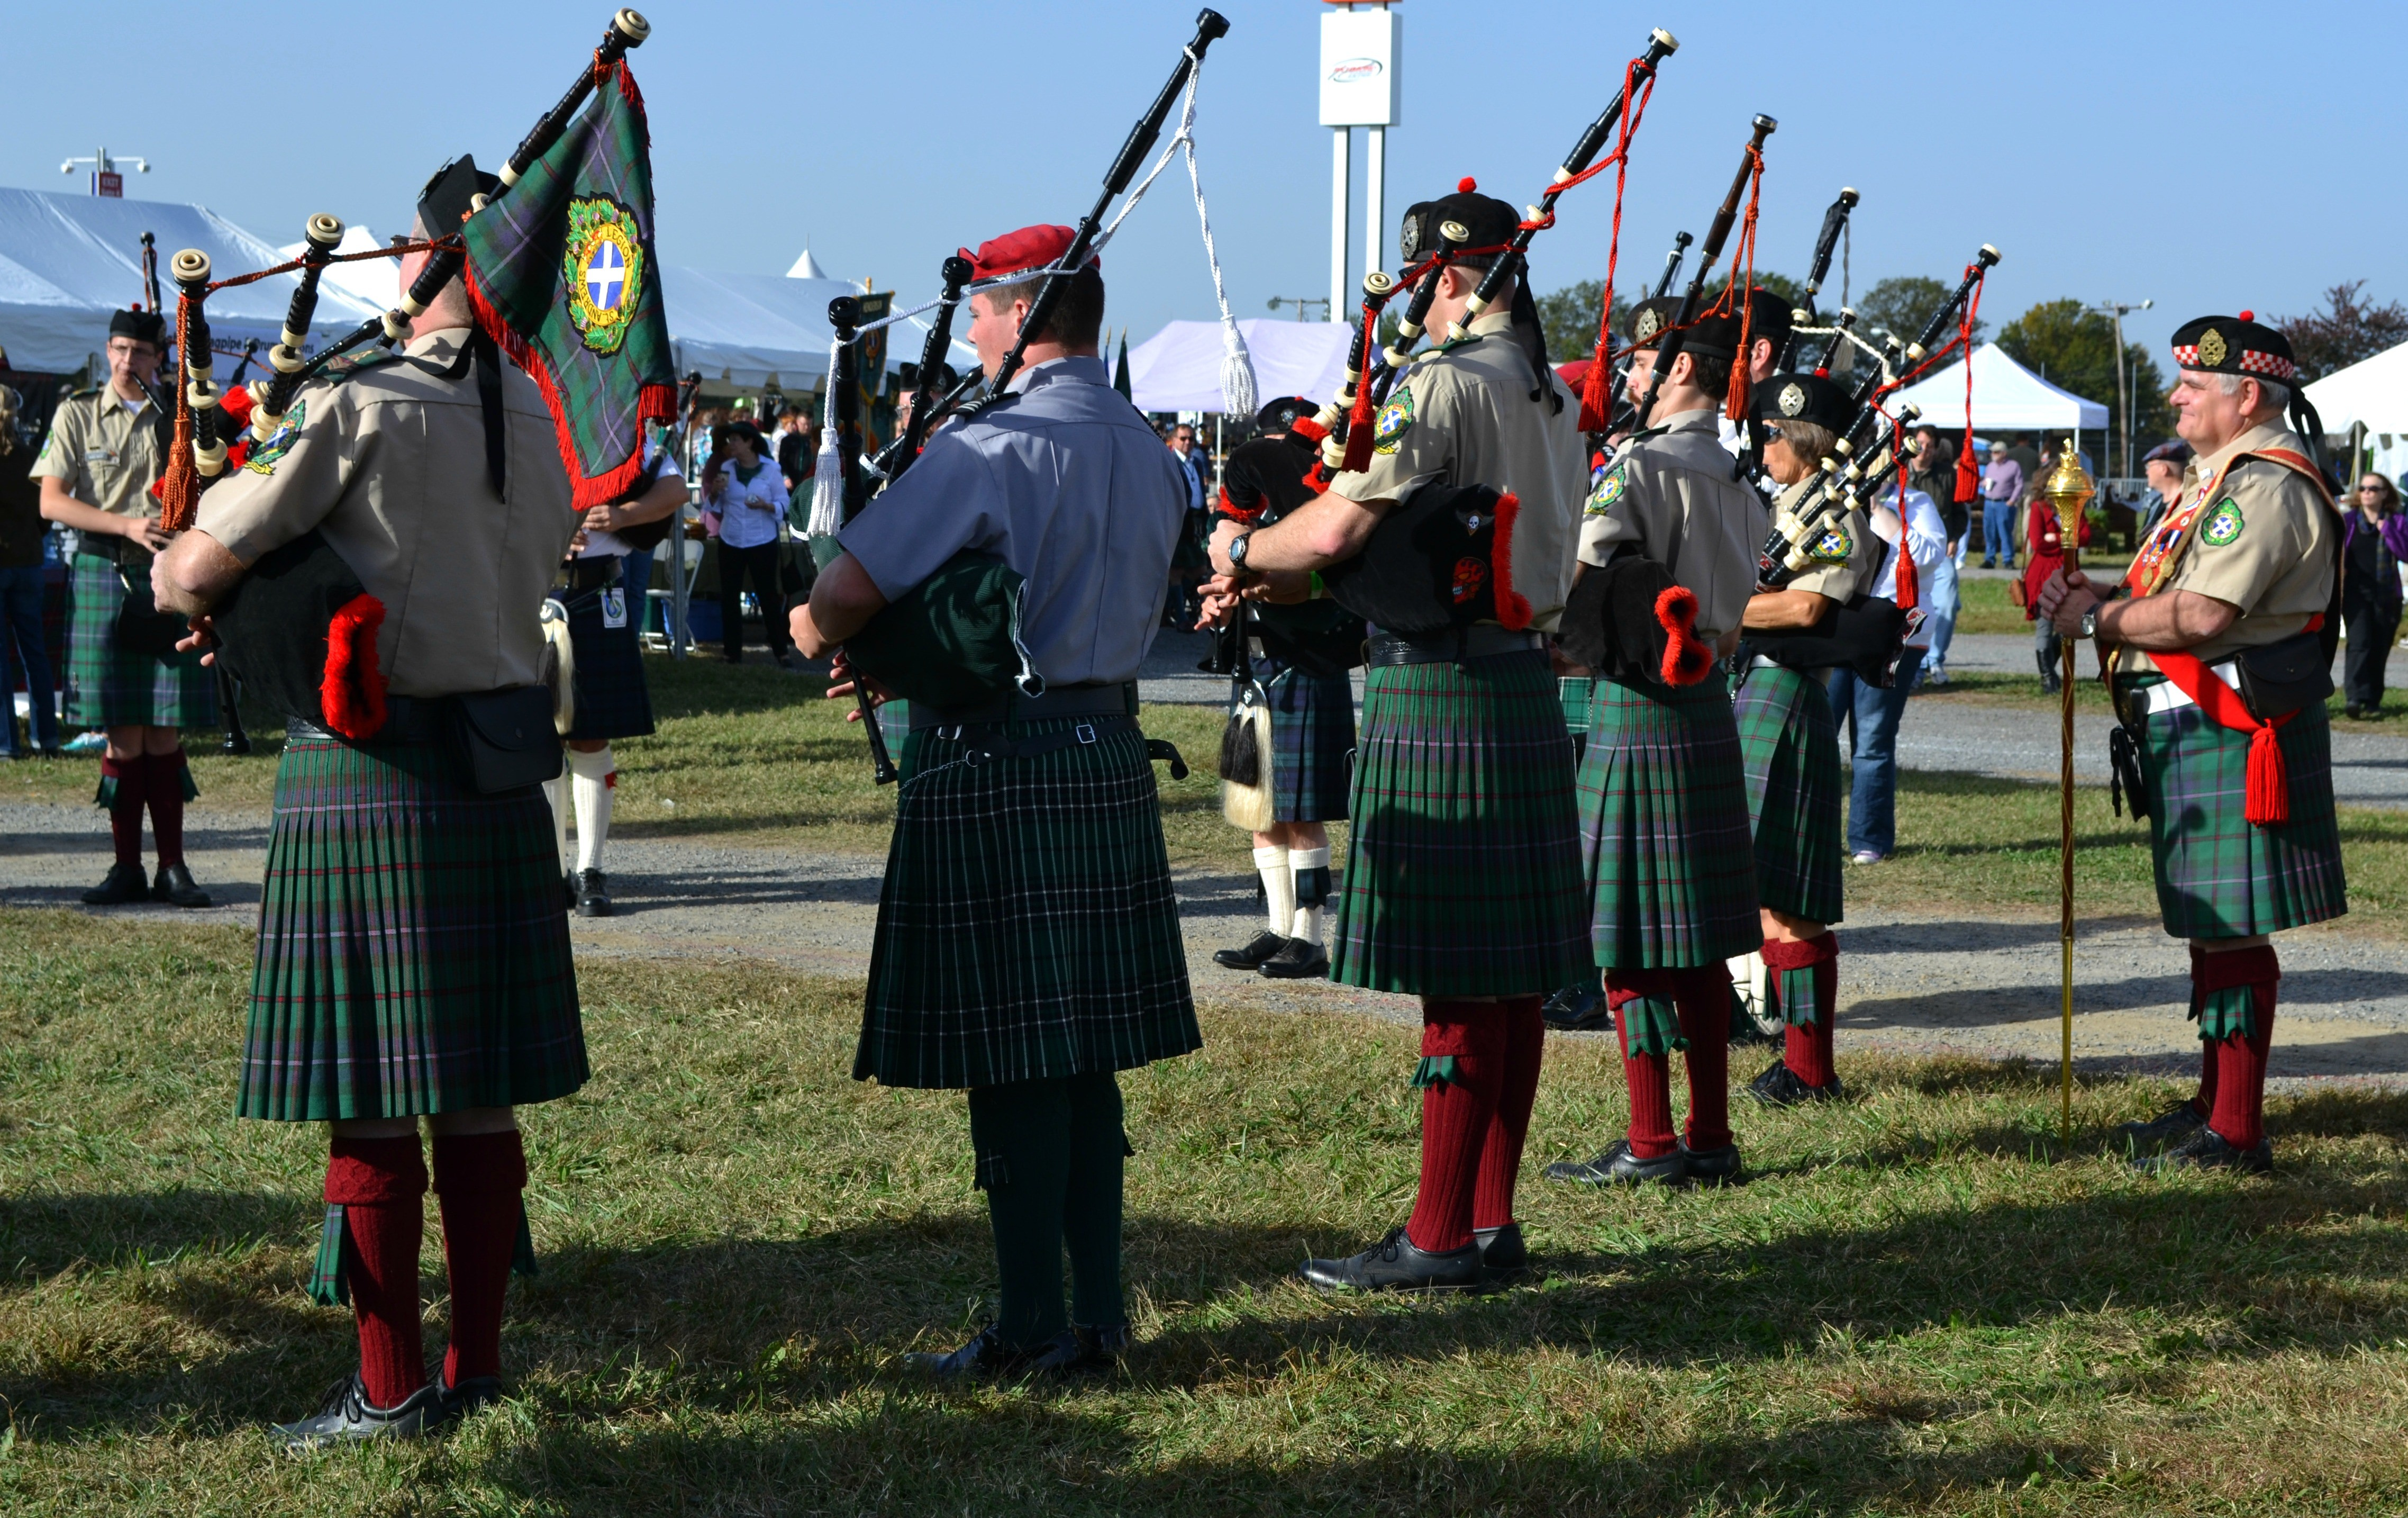 The annual Celtic Fest is this weekend on Saturday and Sunday.